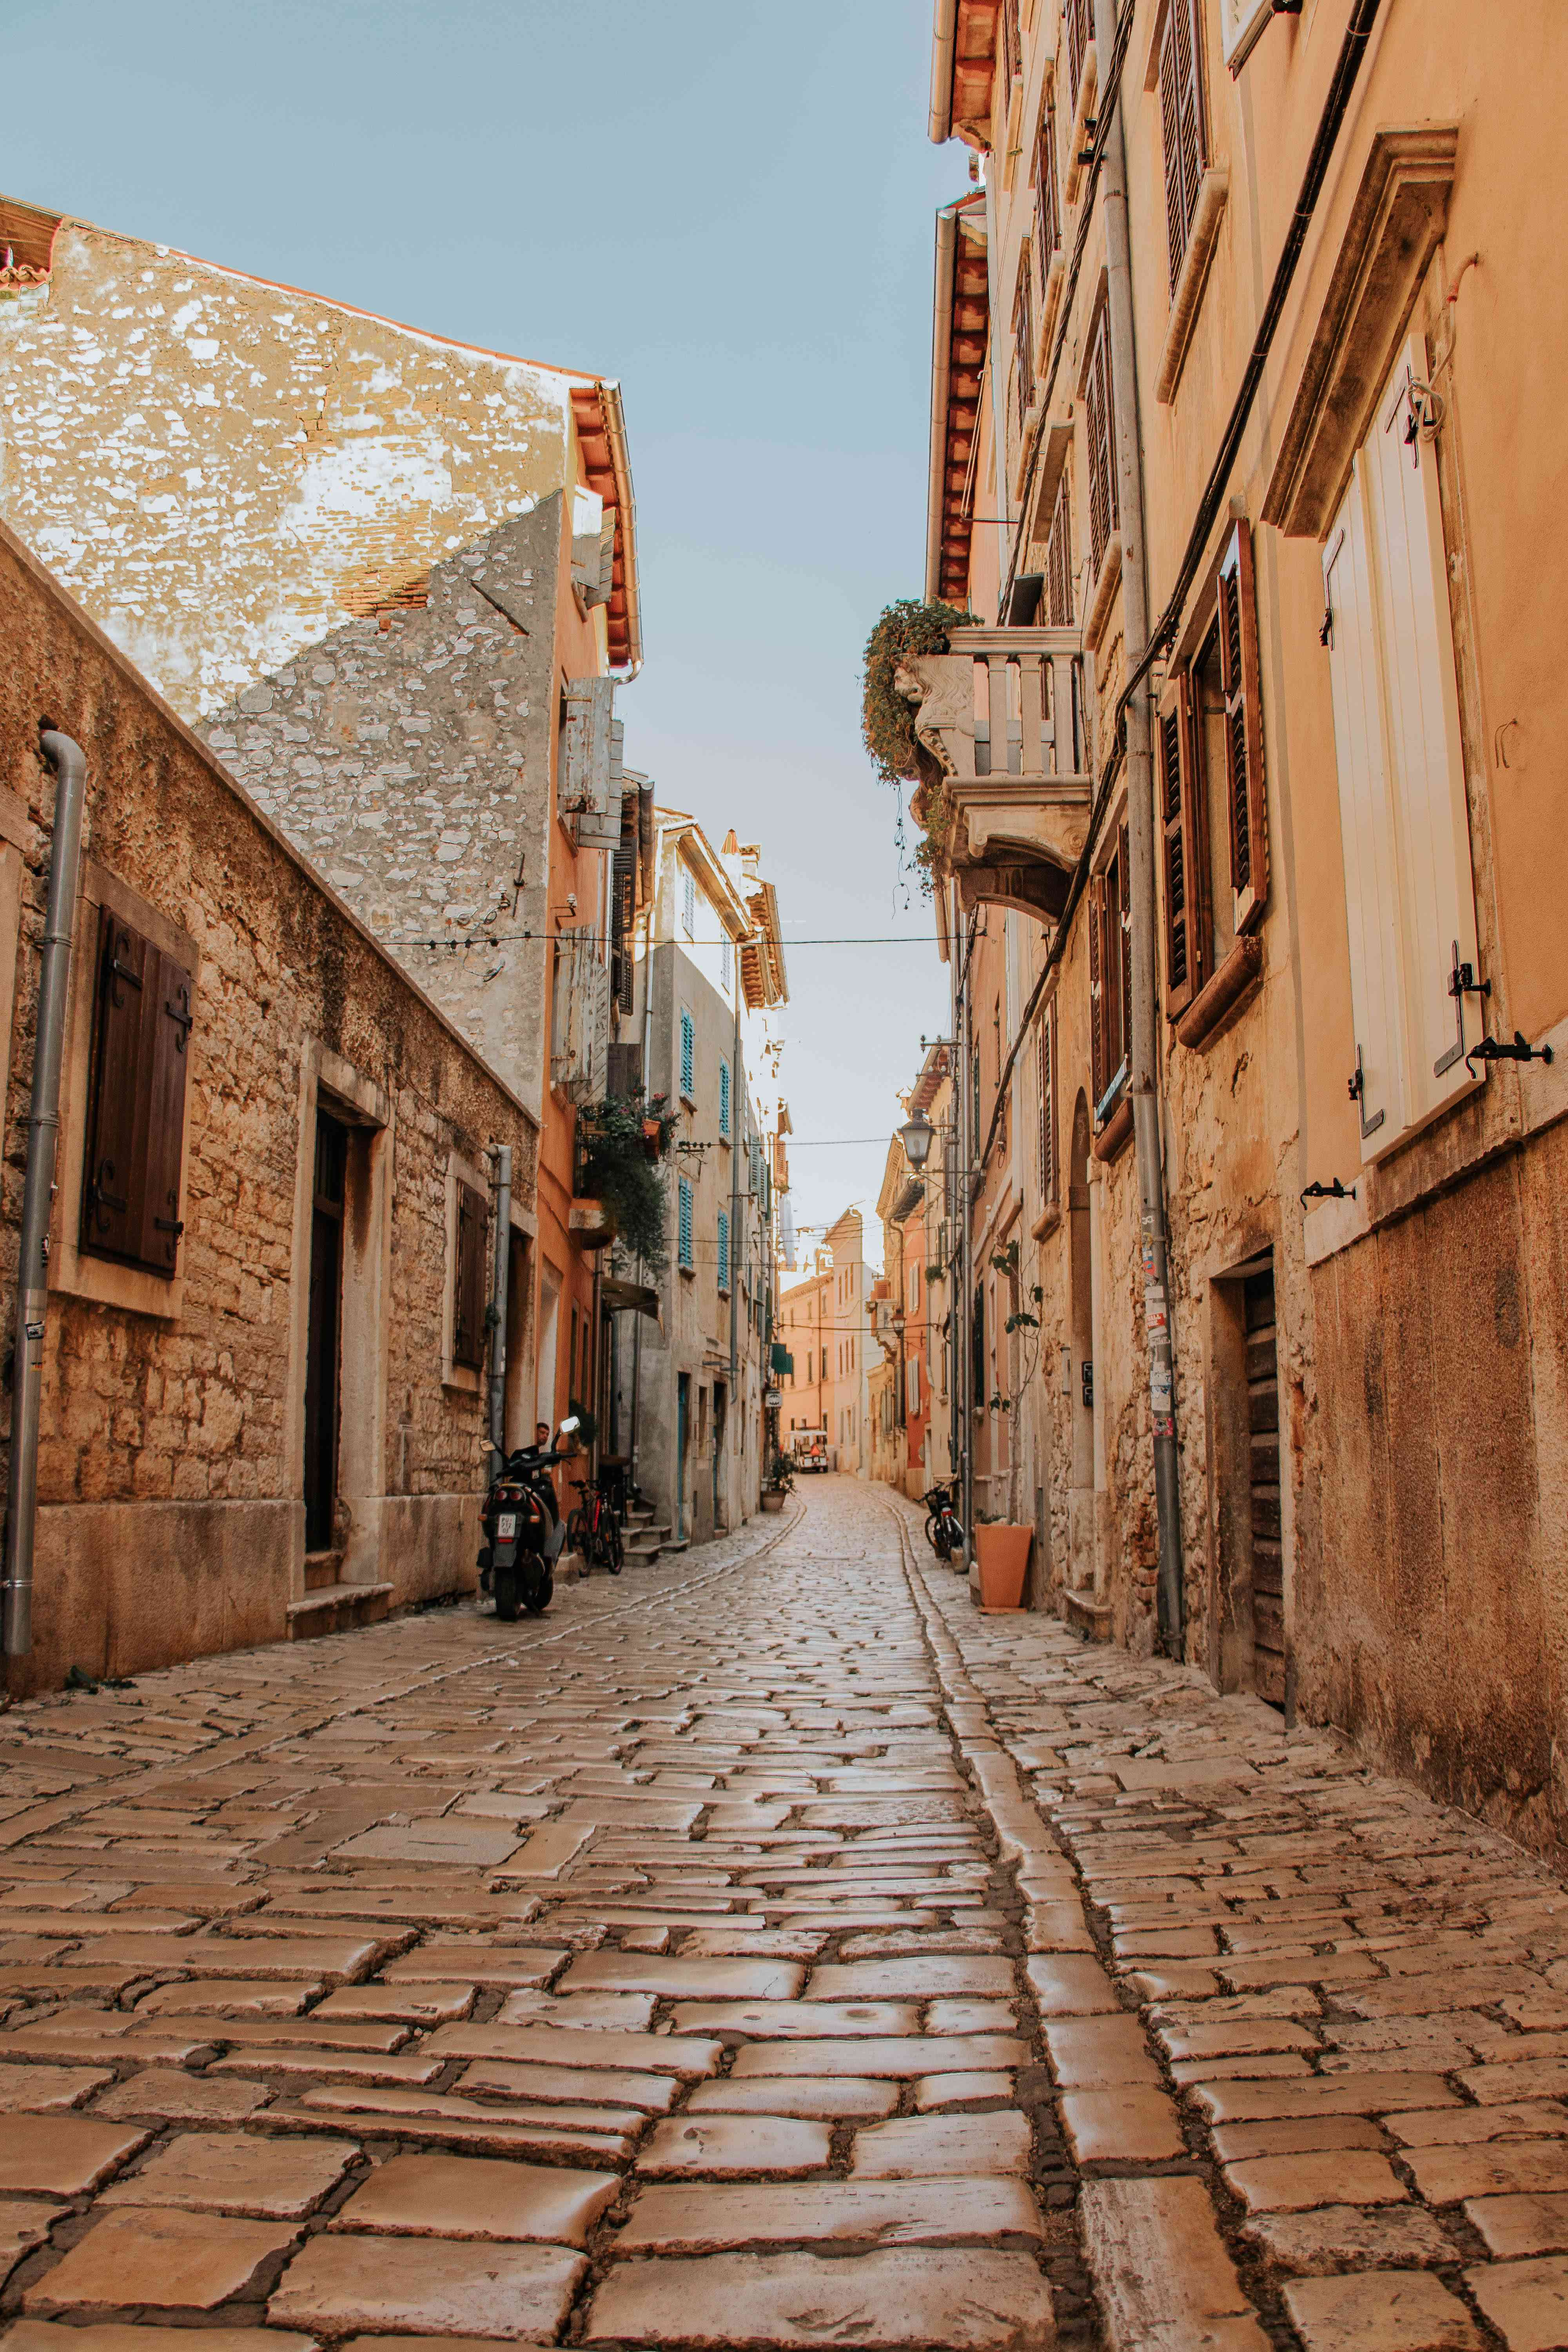 Cobble street in the old town of Rovinj